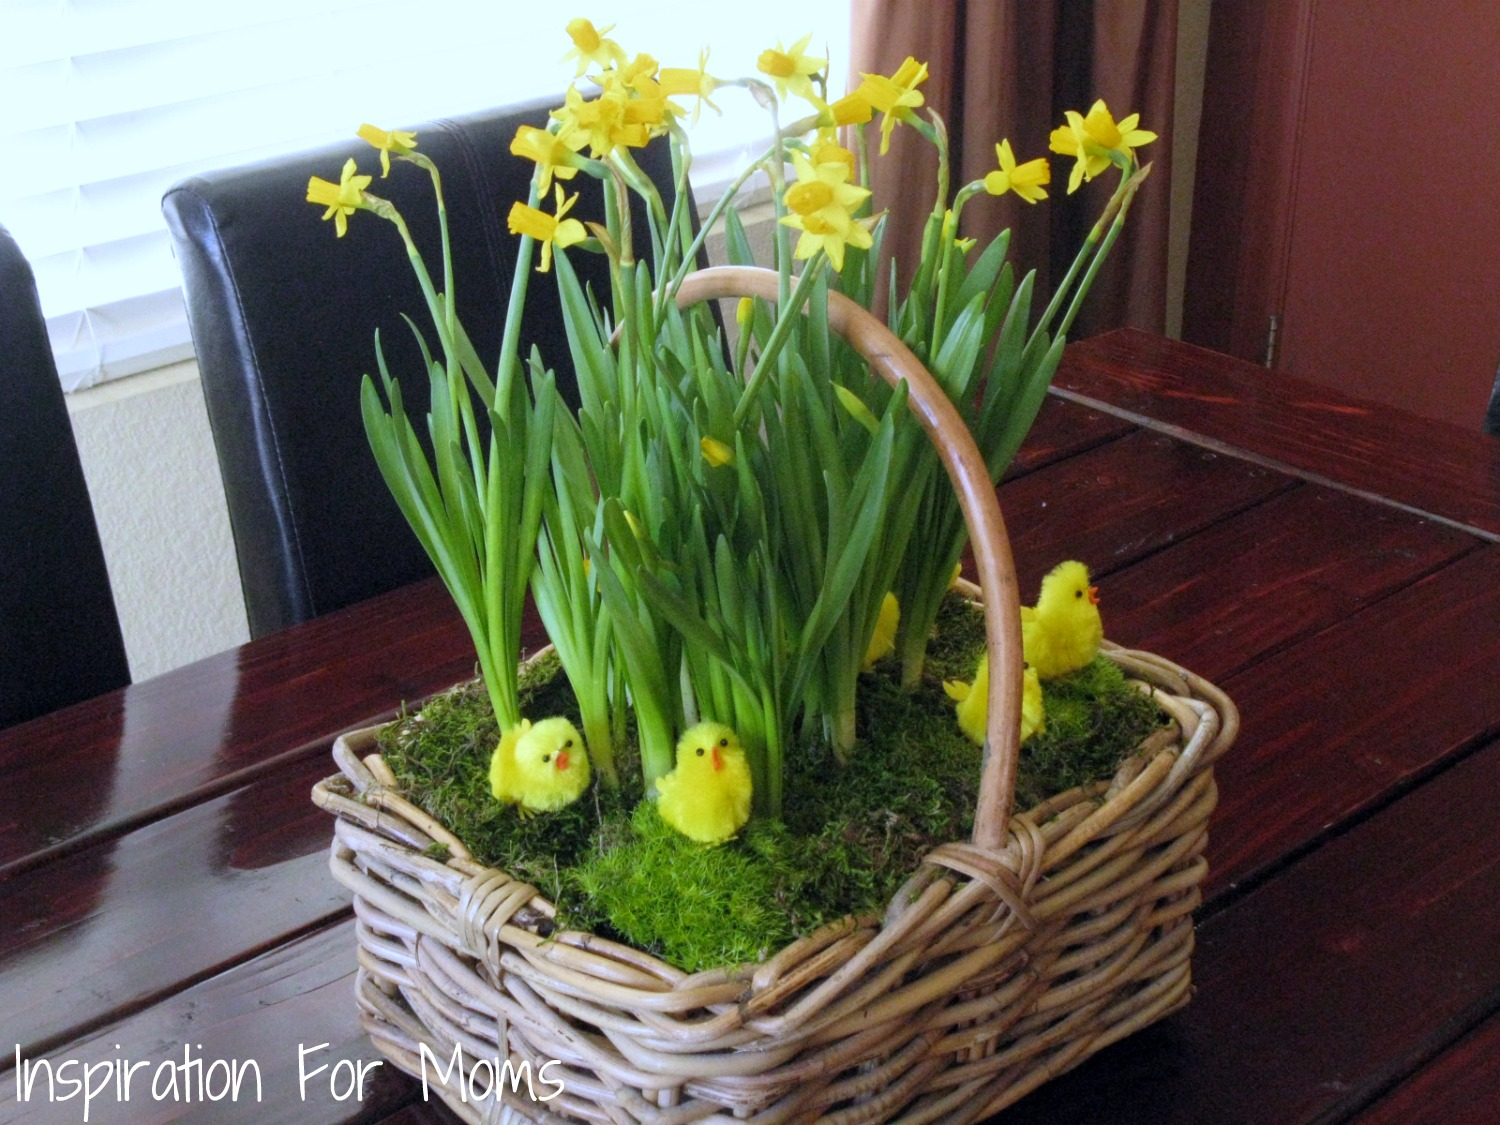 Images Of Flower Baskets : Diy spring easter flower basket inspiration for moms